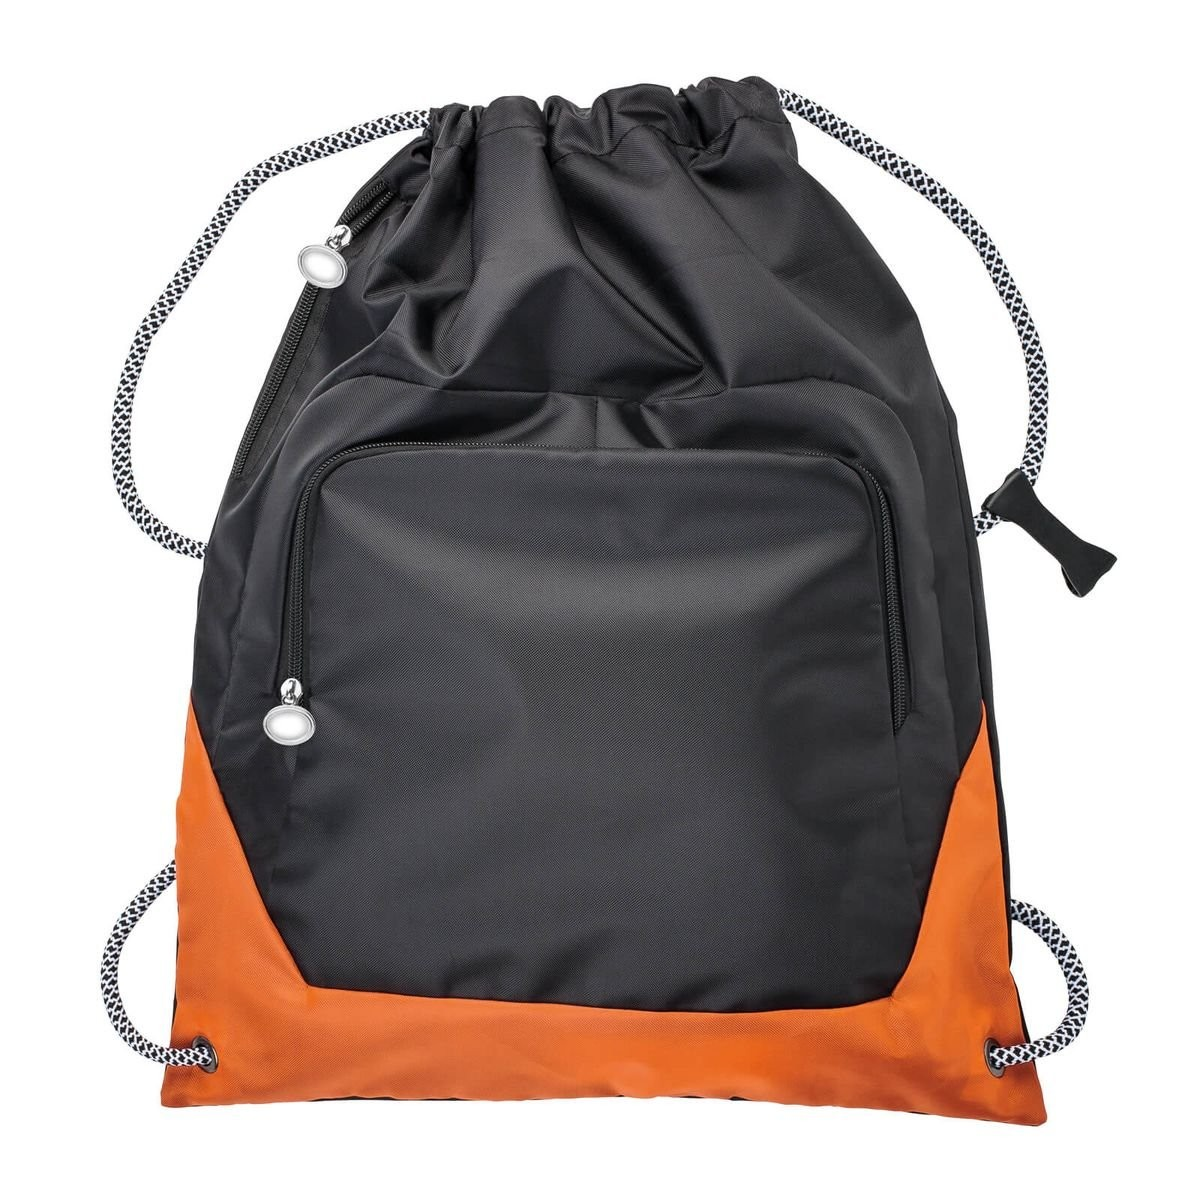 Tas met trekkoort REFLECTS-SUNDSVALL BLACK GREY